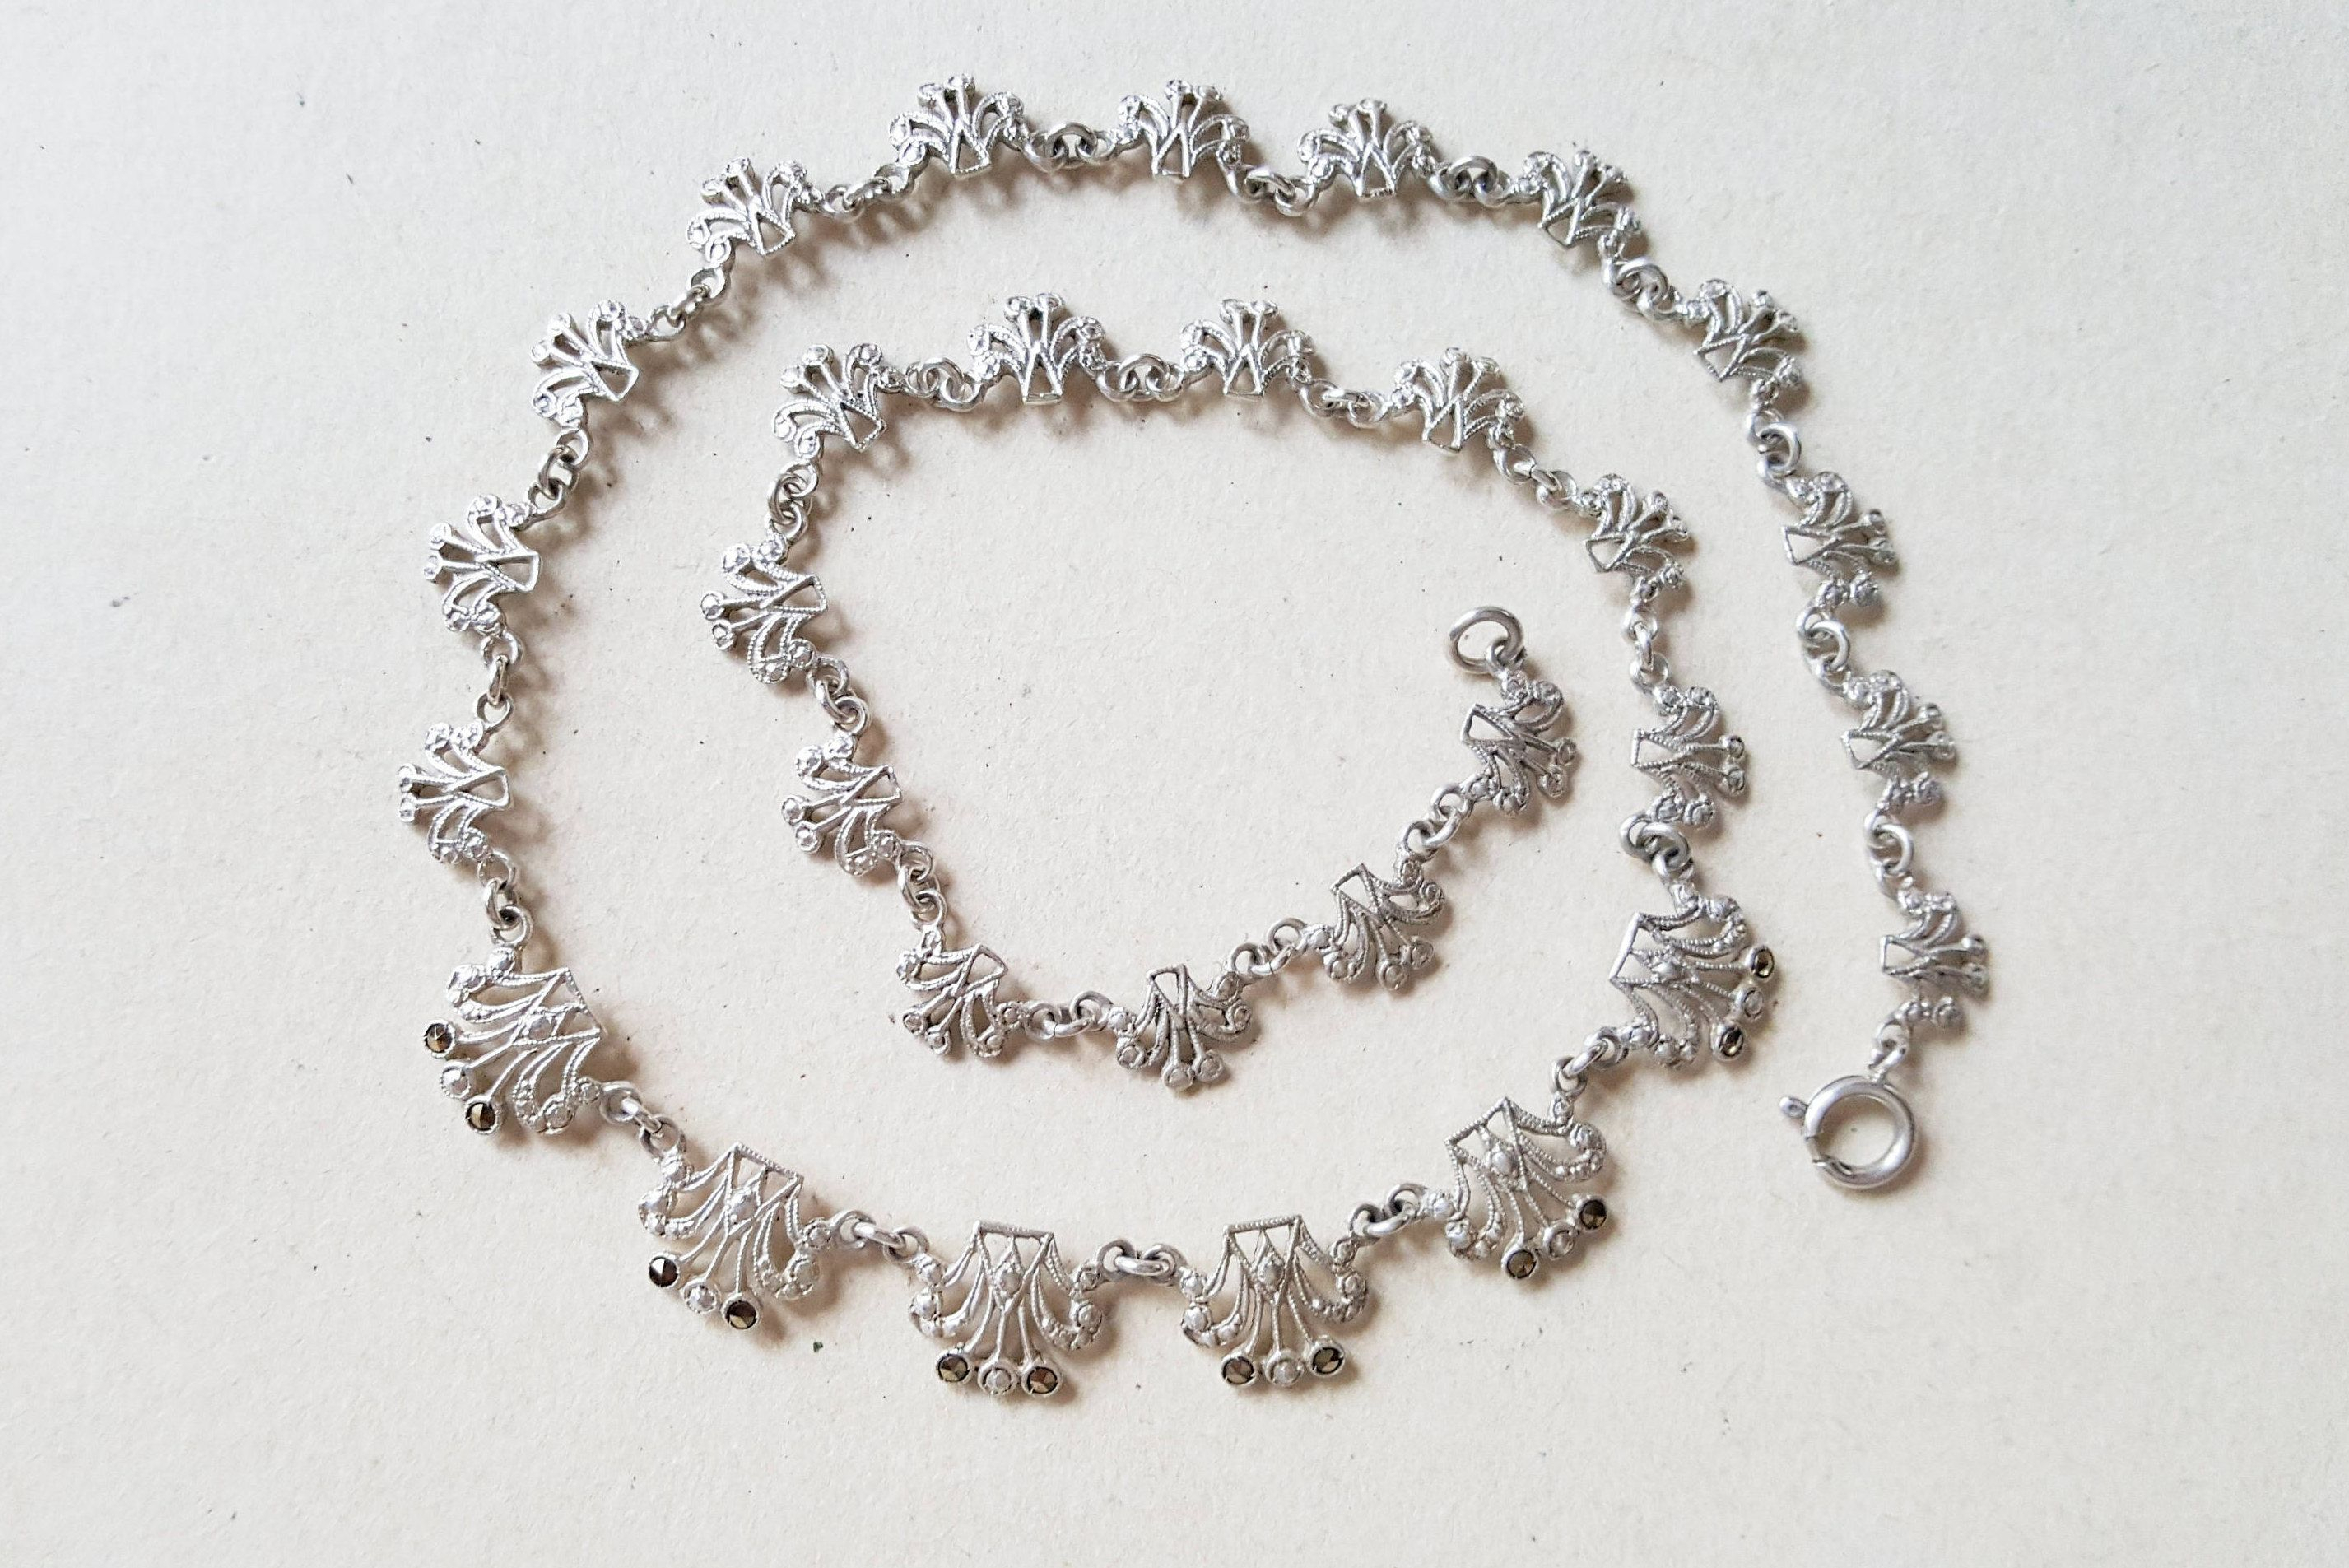 Vintage Silver And Marcasite Collier Necklace, Scandinavia, 1950S Within Most Recent Vintage Circle Collier Necklaces (Gallery 5 of 25)